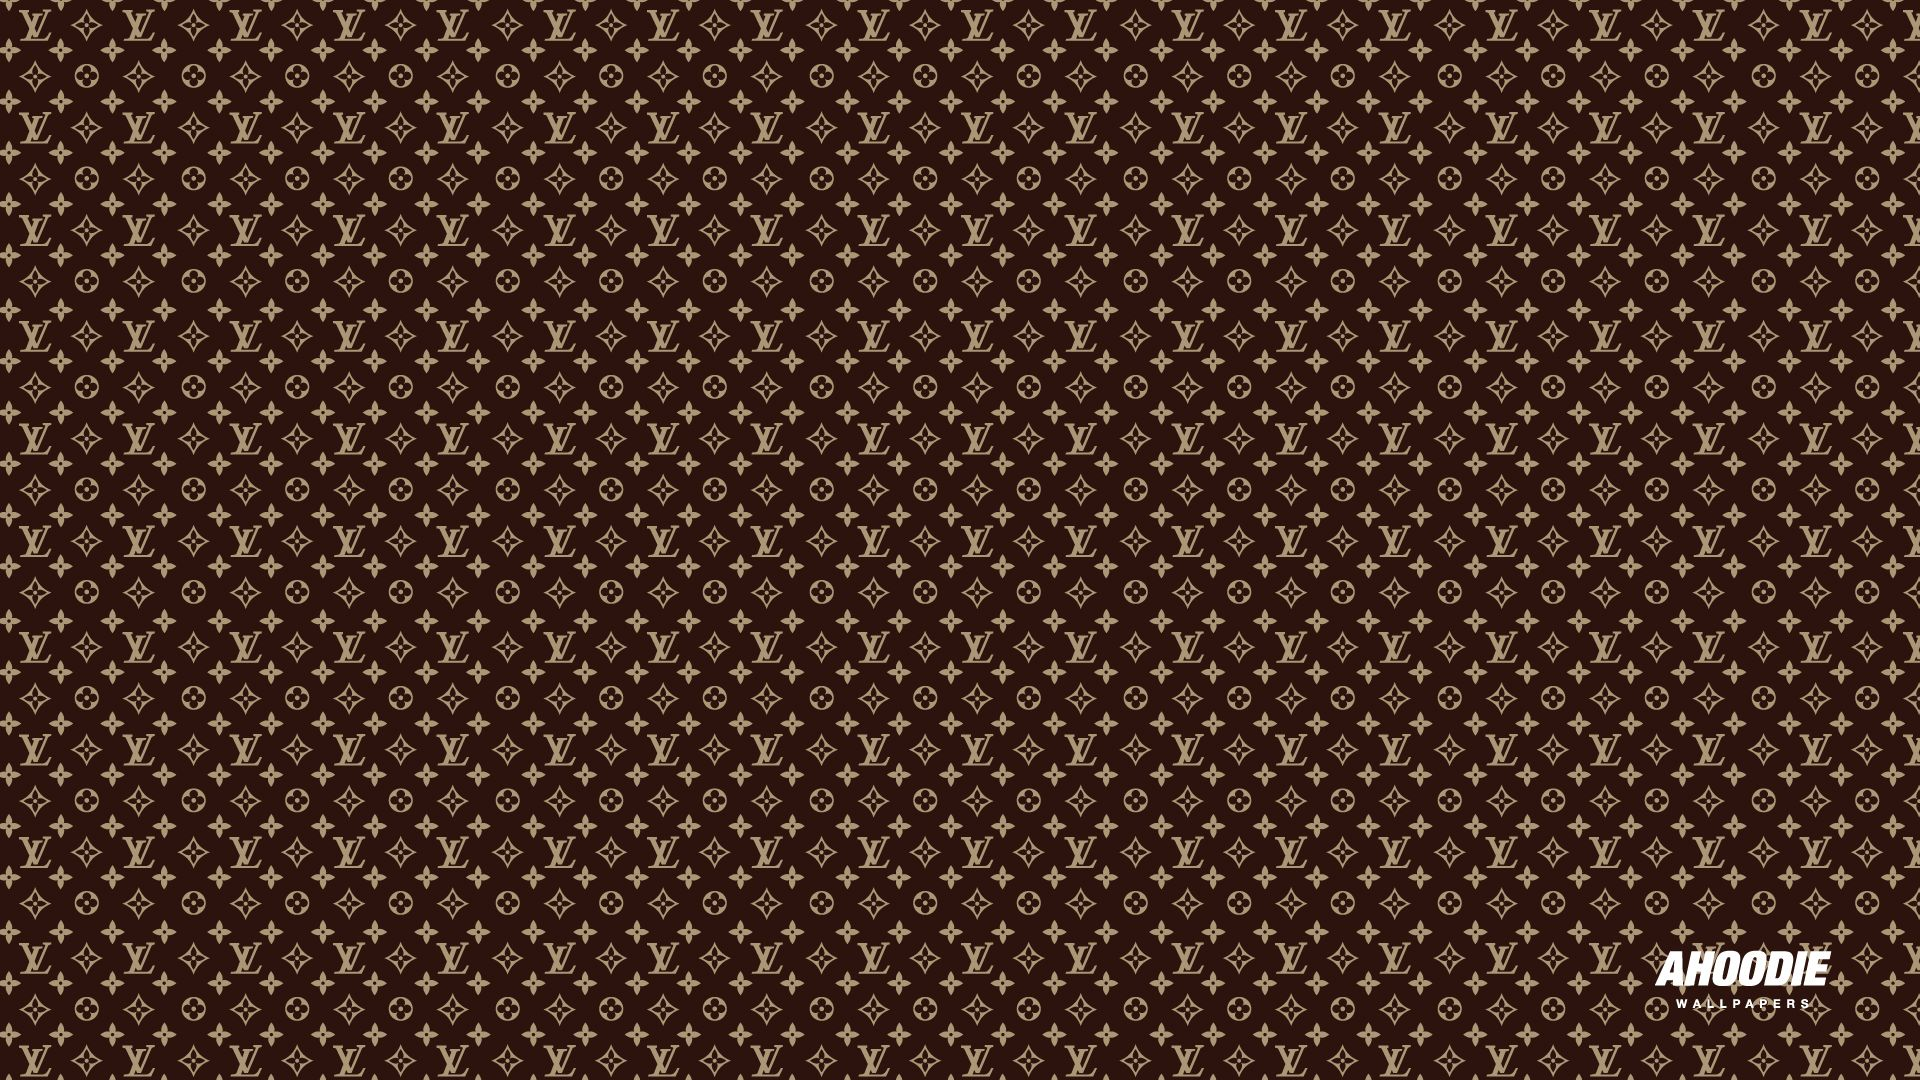 Beautiful Wallpaper Macbook Louis Vuitton - 87f9119e4d6e7e86ed2b46ec1e86492b  2018_467382.jpg